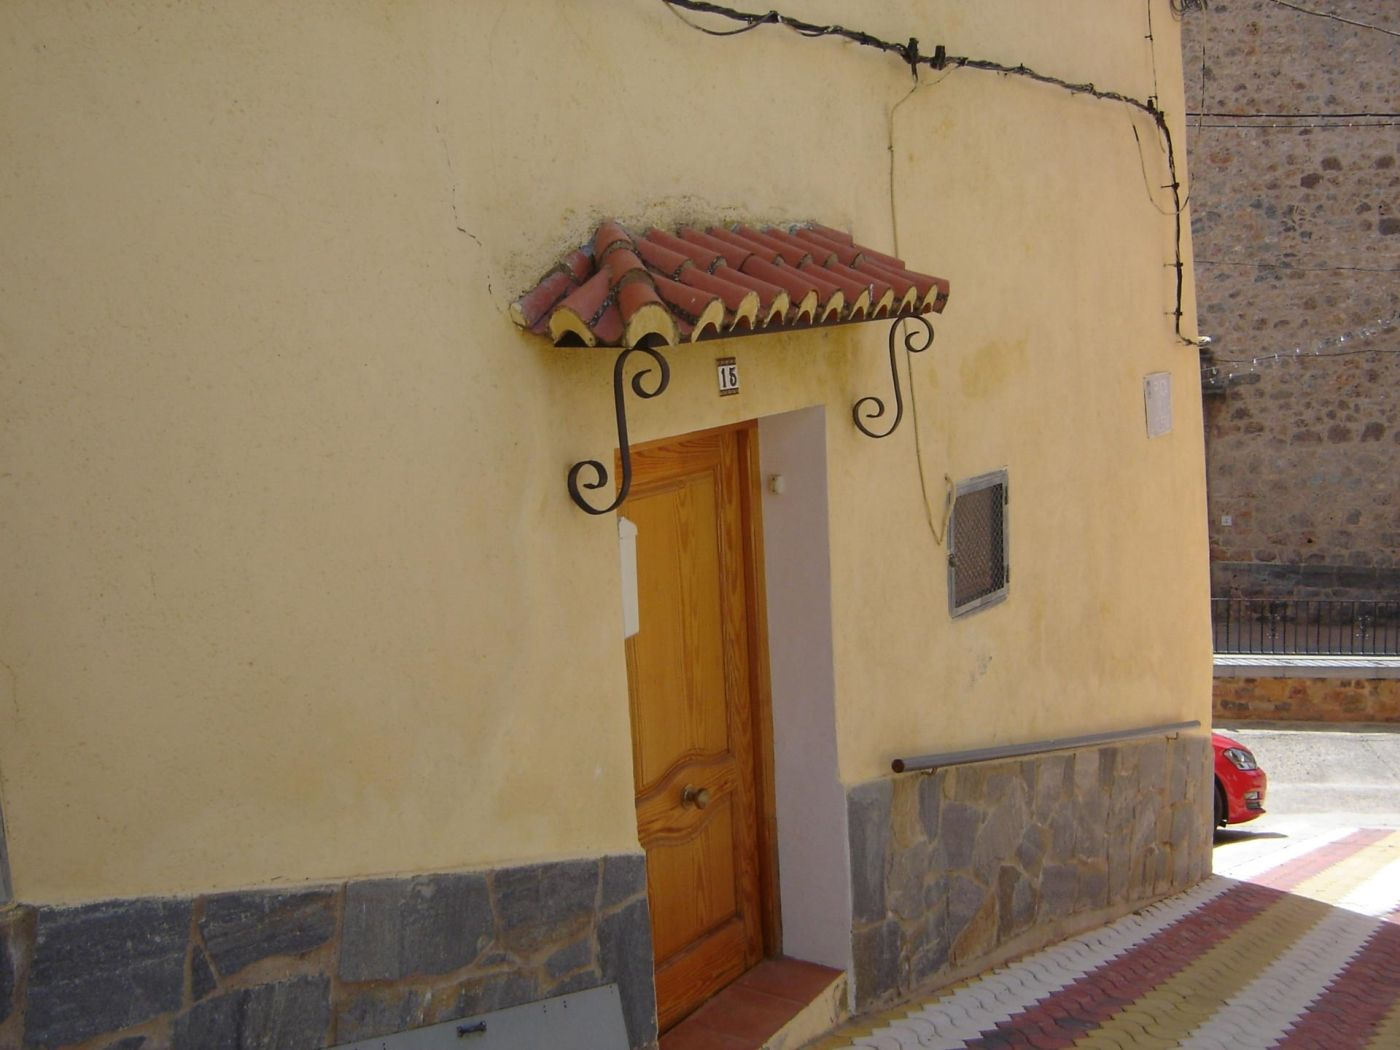 Semi detached house in Plaza la iglesia, 15. Matet / plaza la iglesia